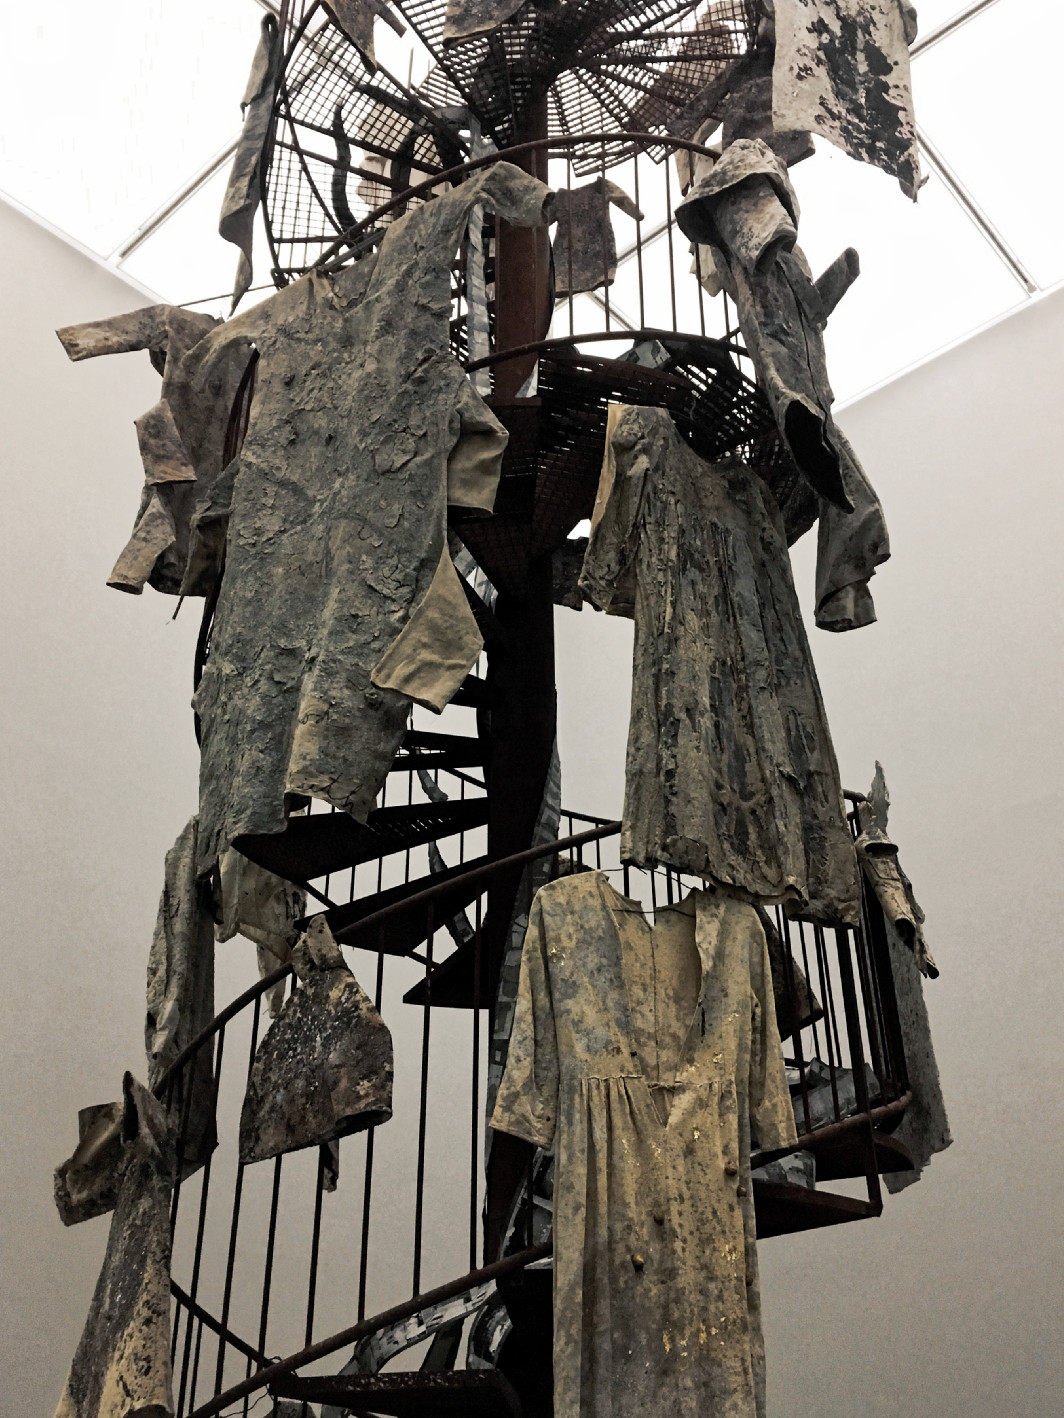 Anselm Kiefer, Walhalla at White Cube Bermondsey